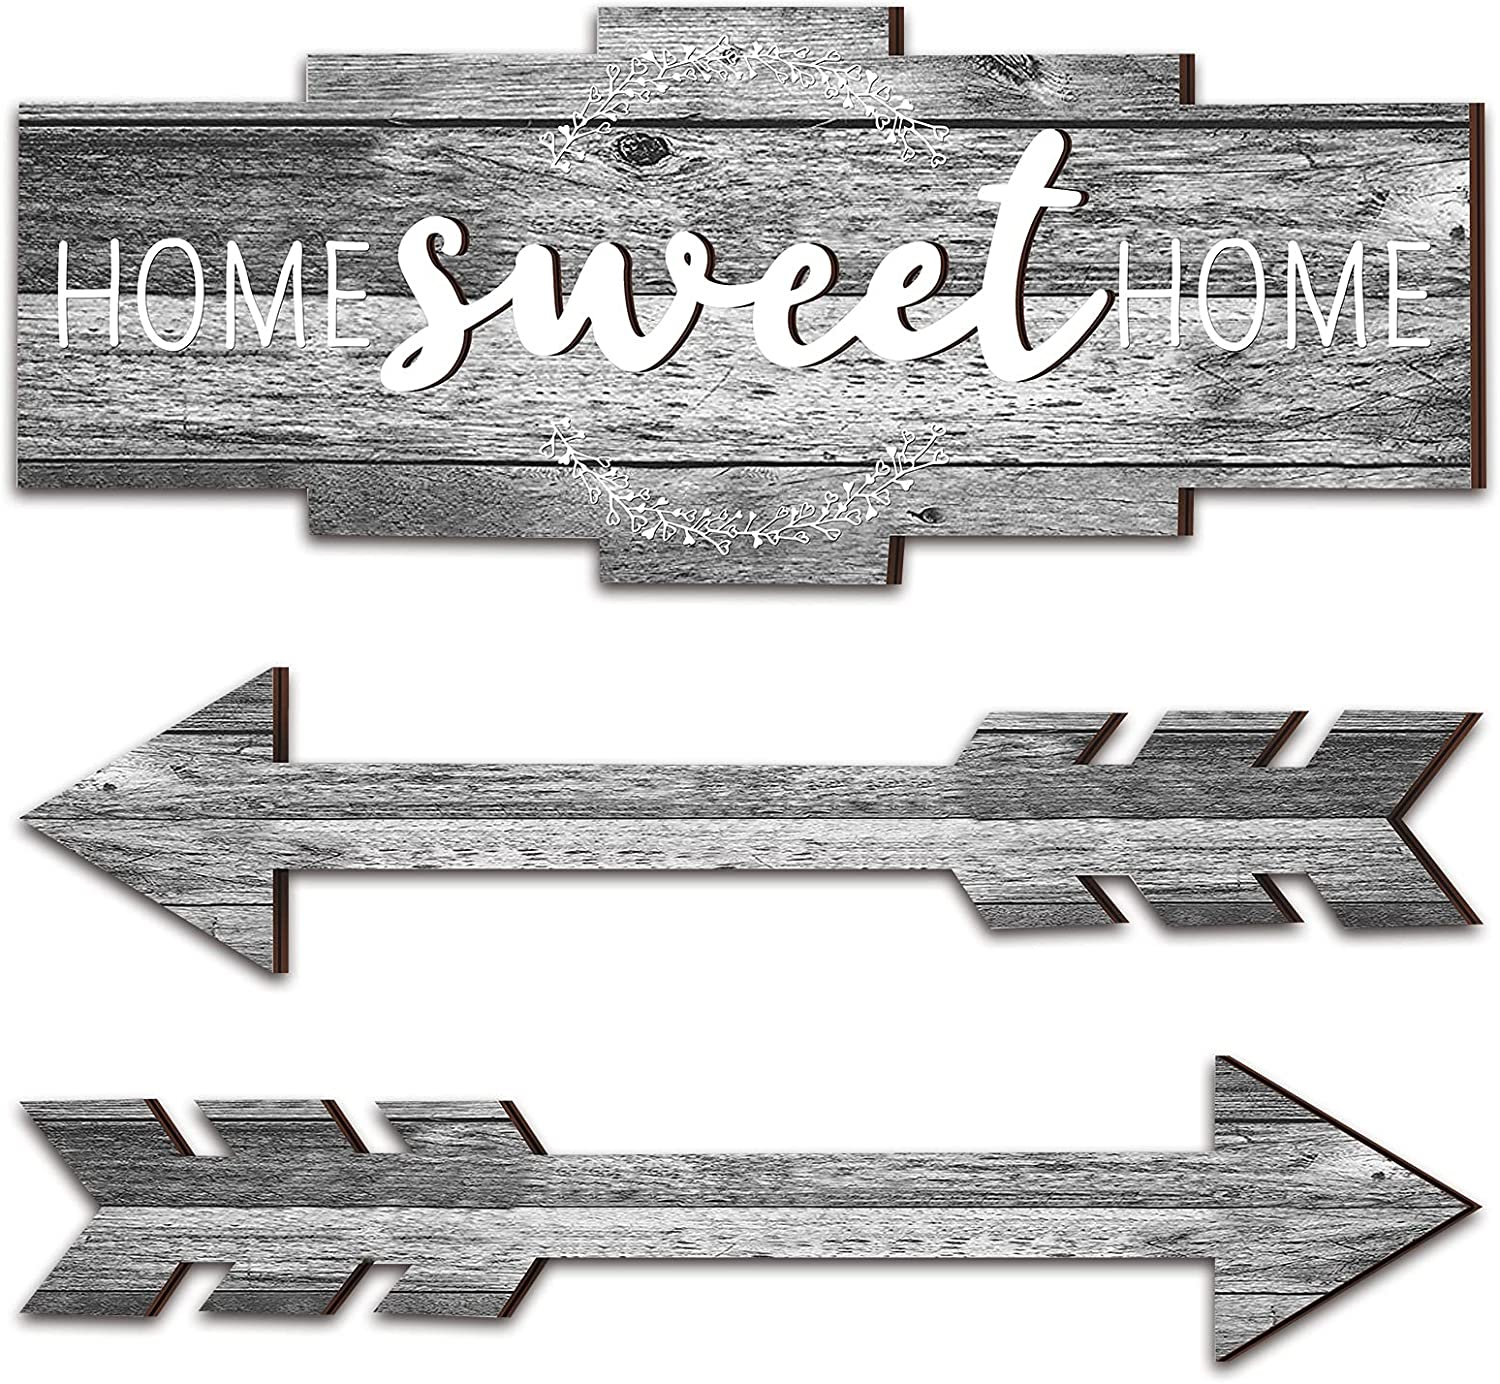 Set of Home Sweet Home Arrow Sign, Rustic Wood Home Wall Decor, Large Farmhouse Arrow Sign Plaque Wall Hanging for Bedroom, Living Room, Party, Wedding Decor (Classic Color)